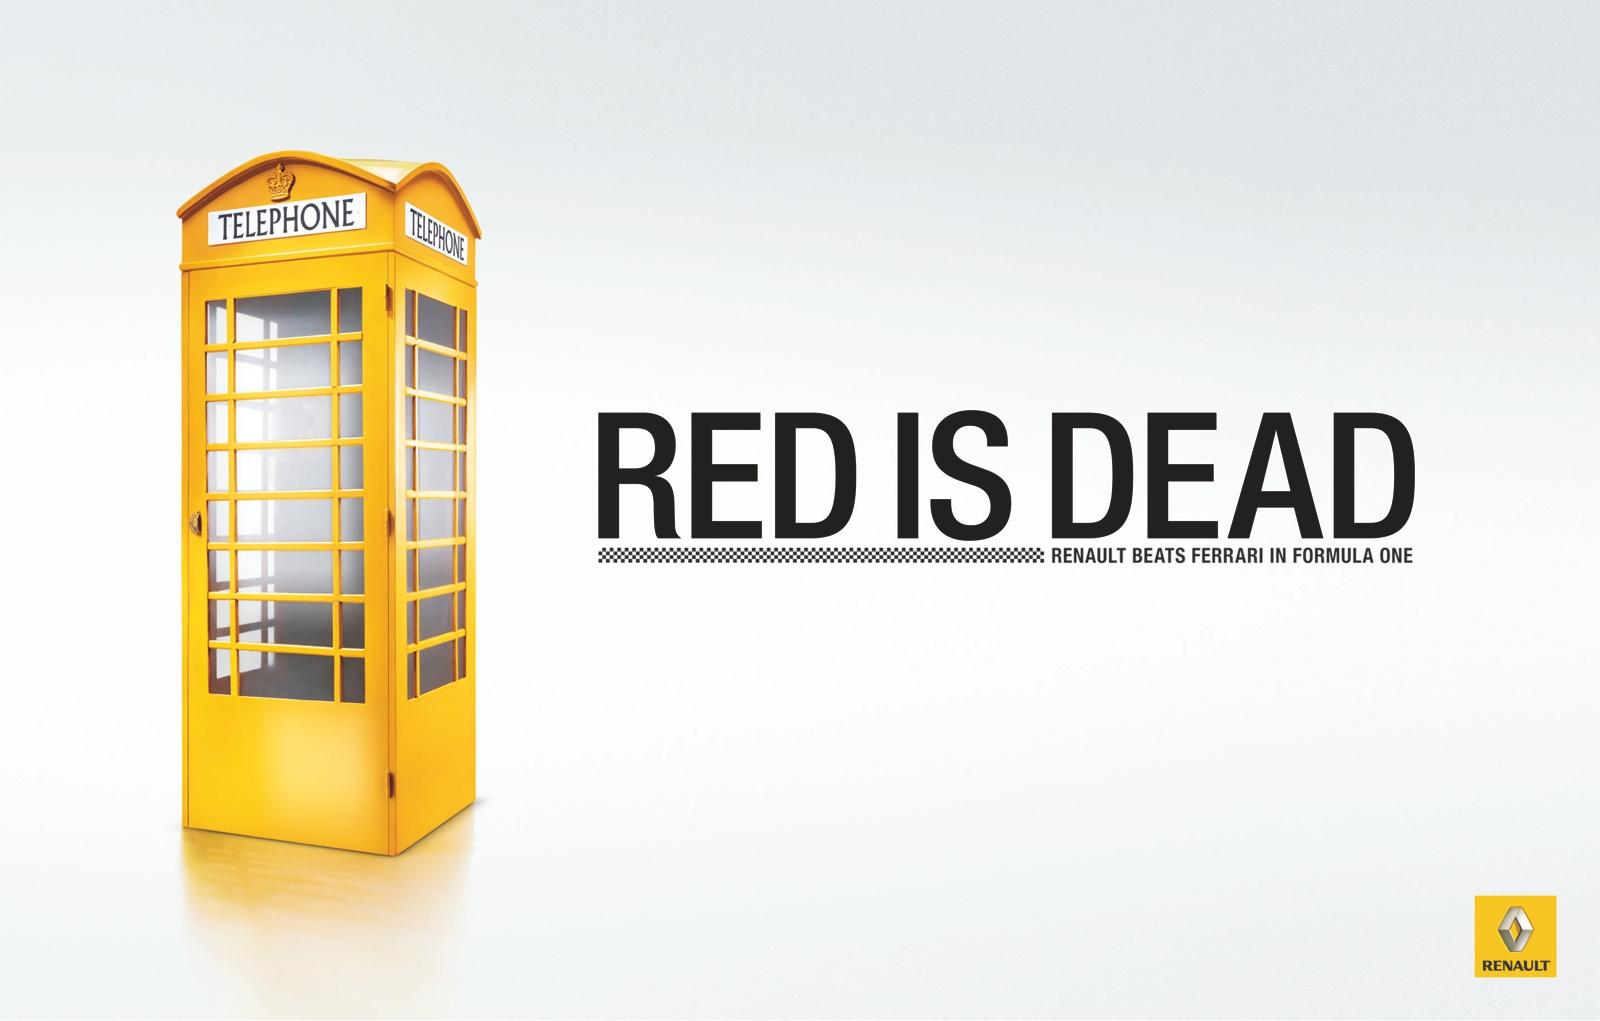 Renault Print Ad -  Red is Dead, English Phone Box